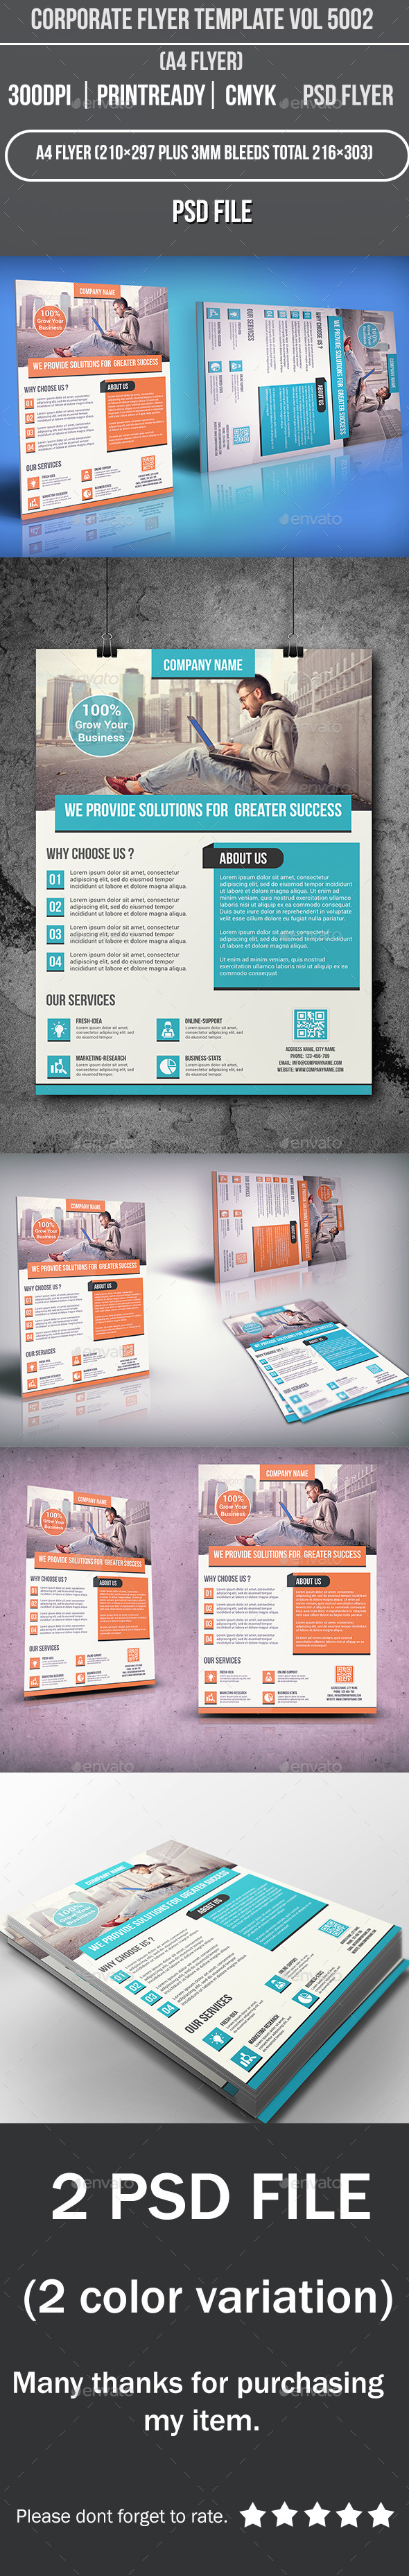 Corporate Flyer Template Vol 5002 - Corporate Flyers